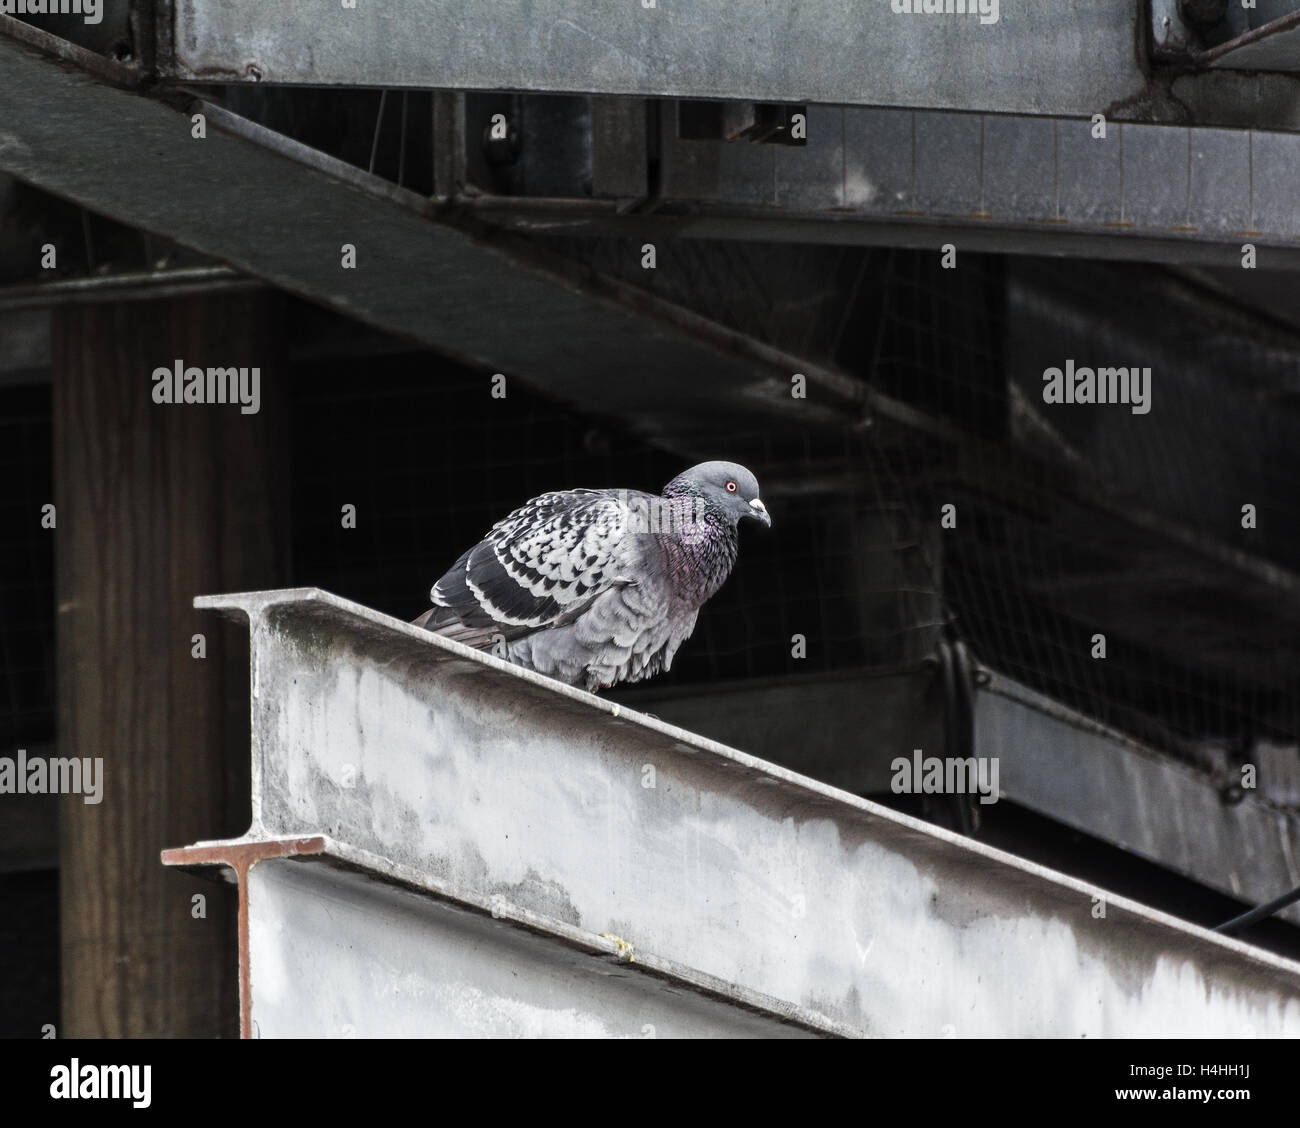 Pigeon among steel structures - Stock Image